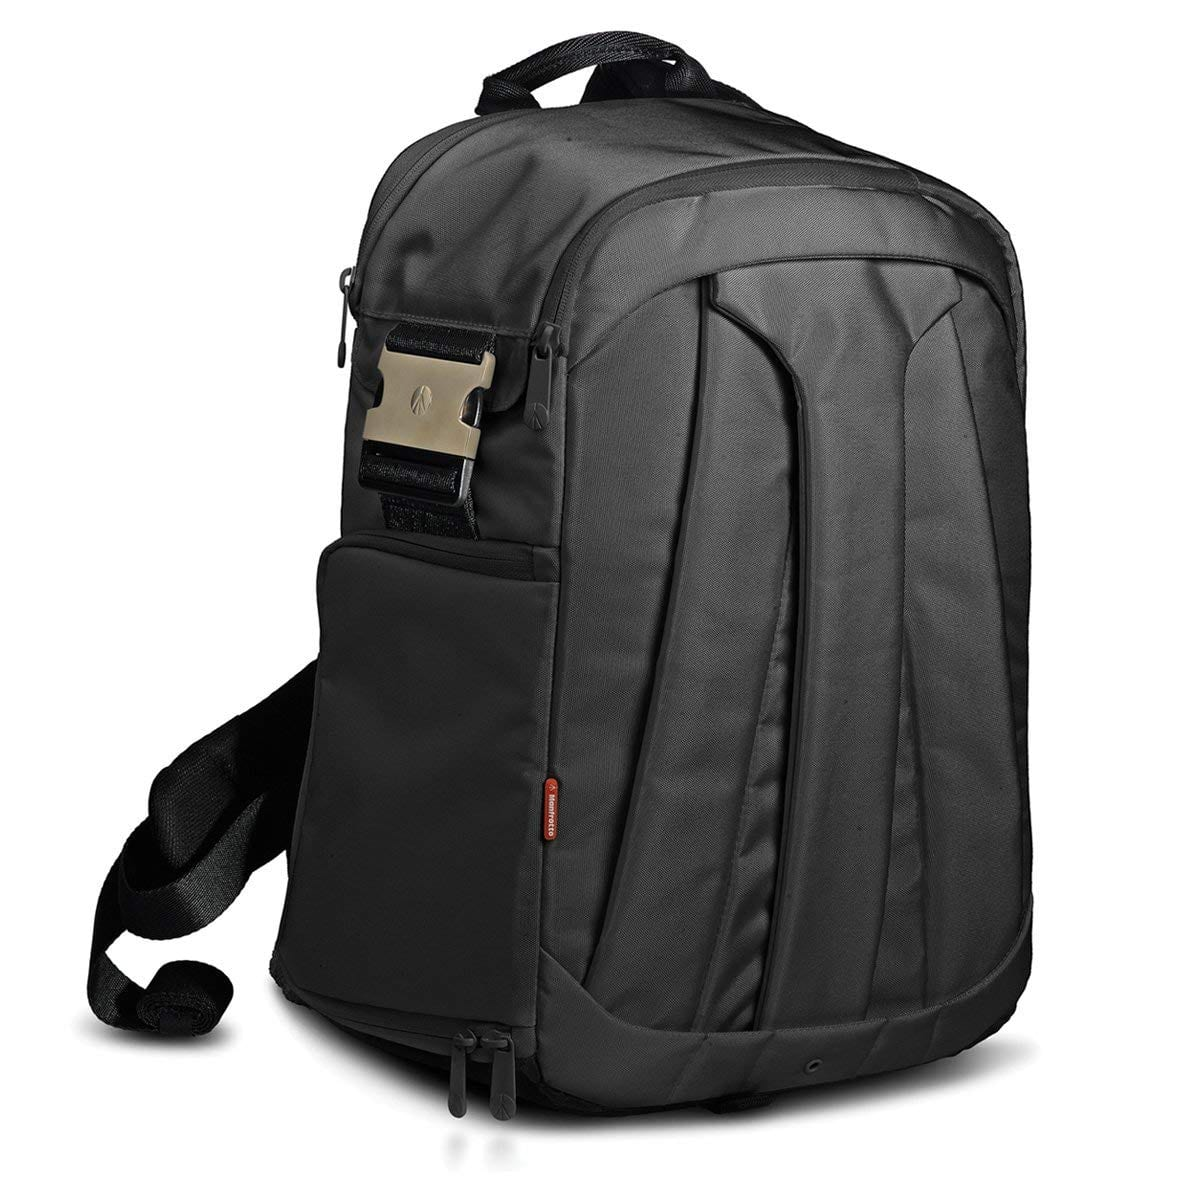 Manfrotto MB SS390-7BB AGILE VII Sling Bag (Black or Bungee Cord) $39.95 @ B&H Photo w/ Free Shipping